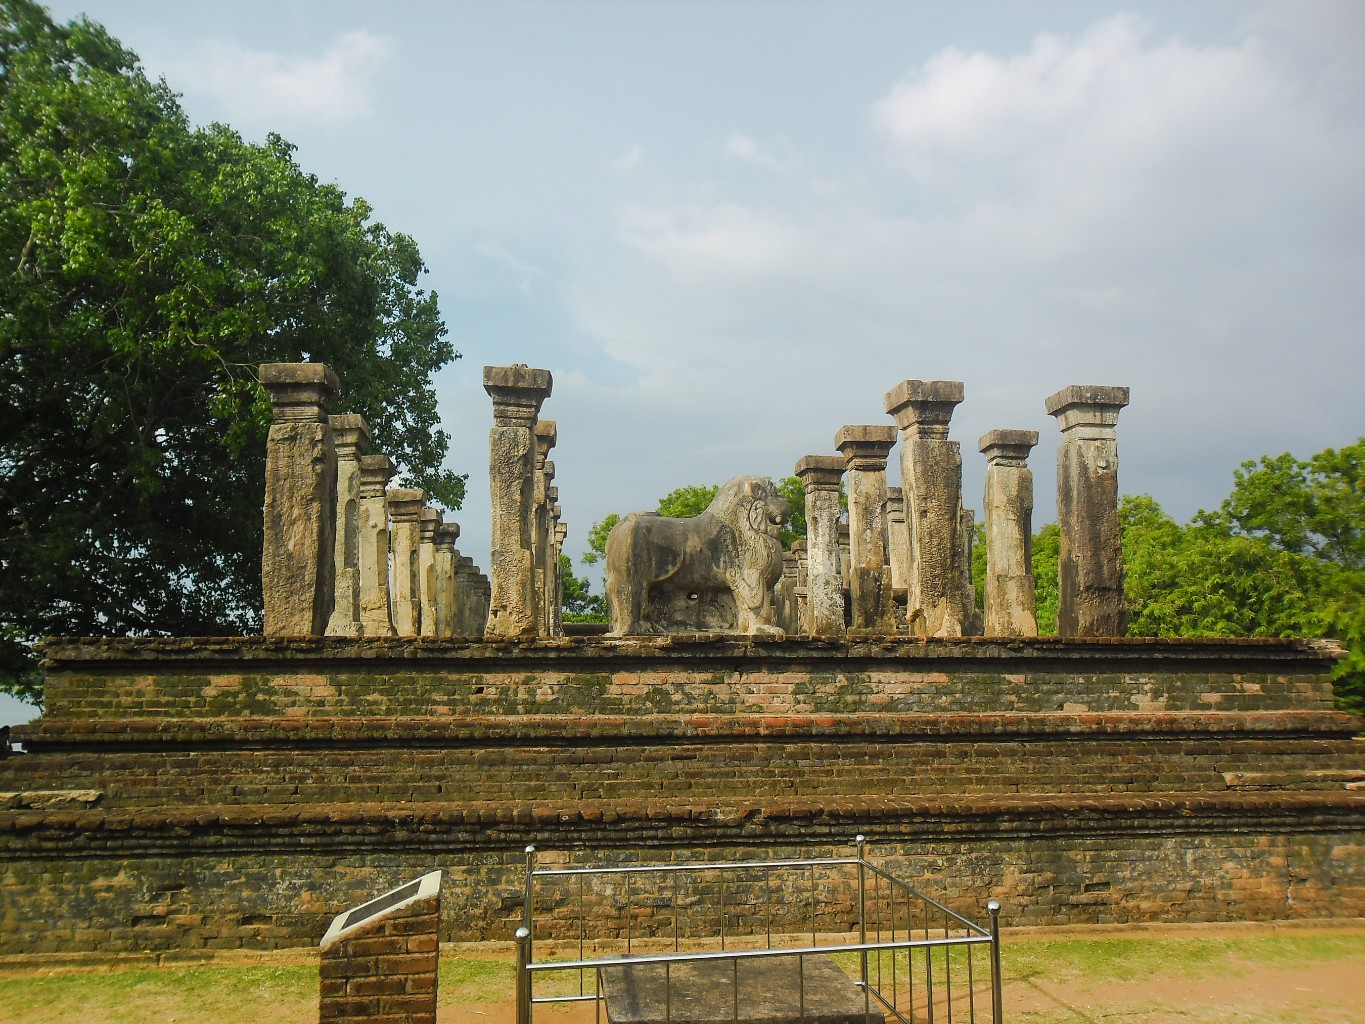 Council-Chamber-of-Nissankamalla-Ancient-City-of-Polonnaruwa-2